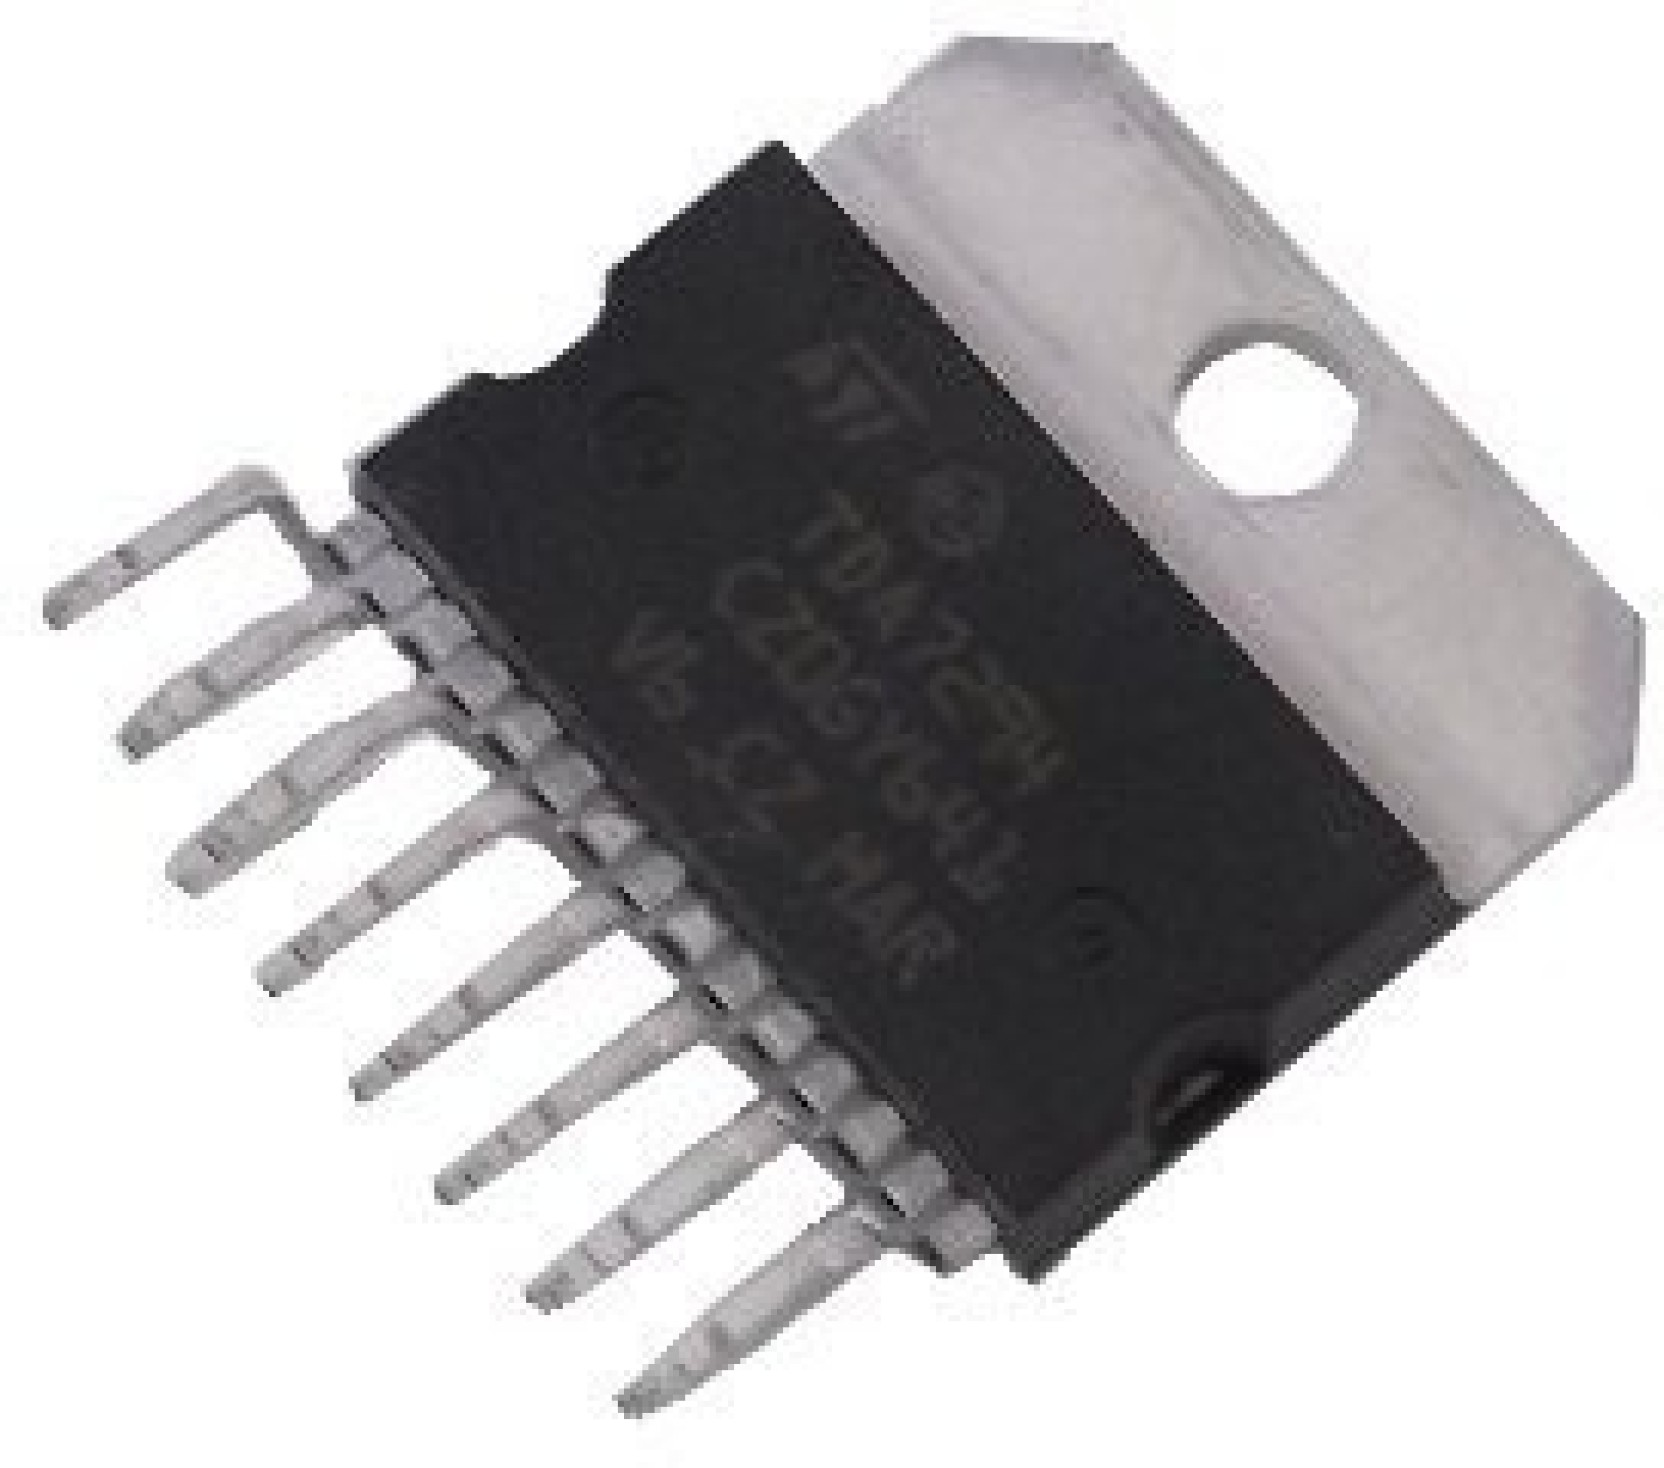 Generic Tda7294 Chip For Cps106 50w Amplifier Module Price In India 100w Audio On Offer